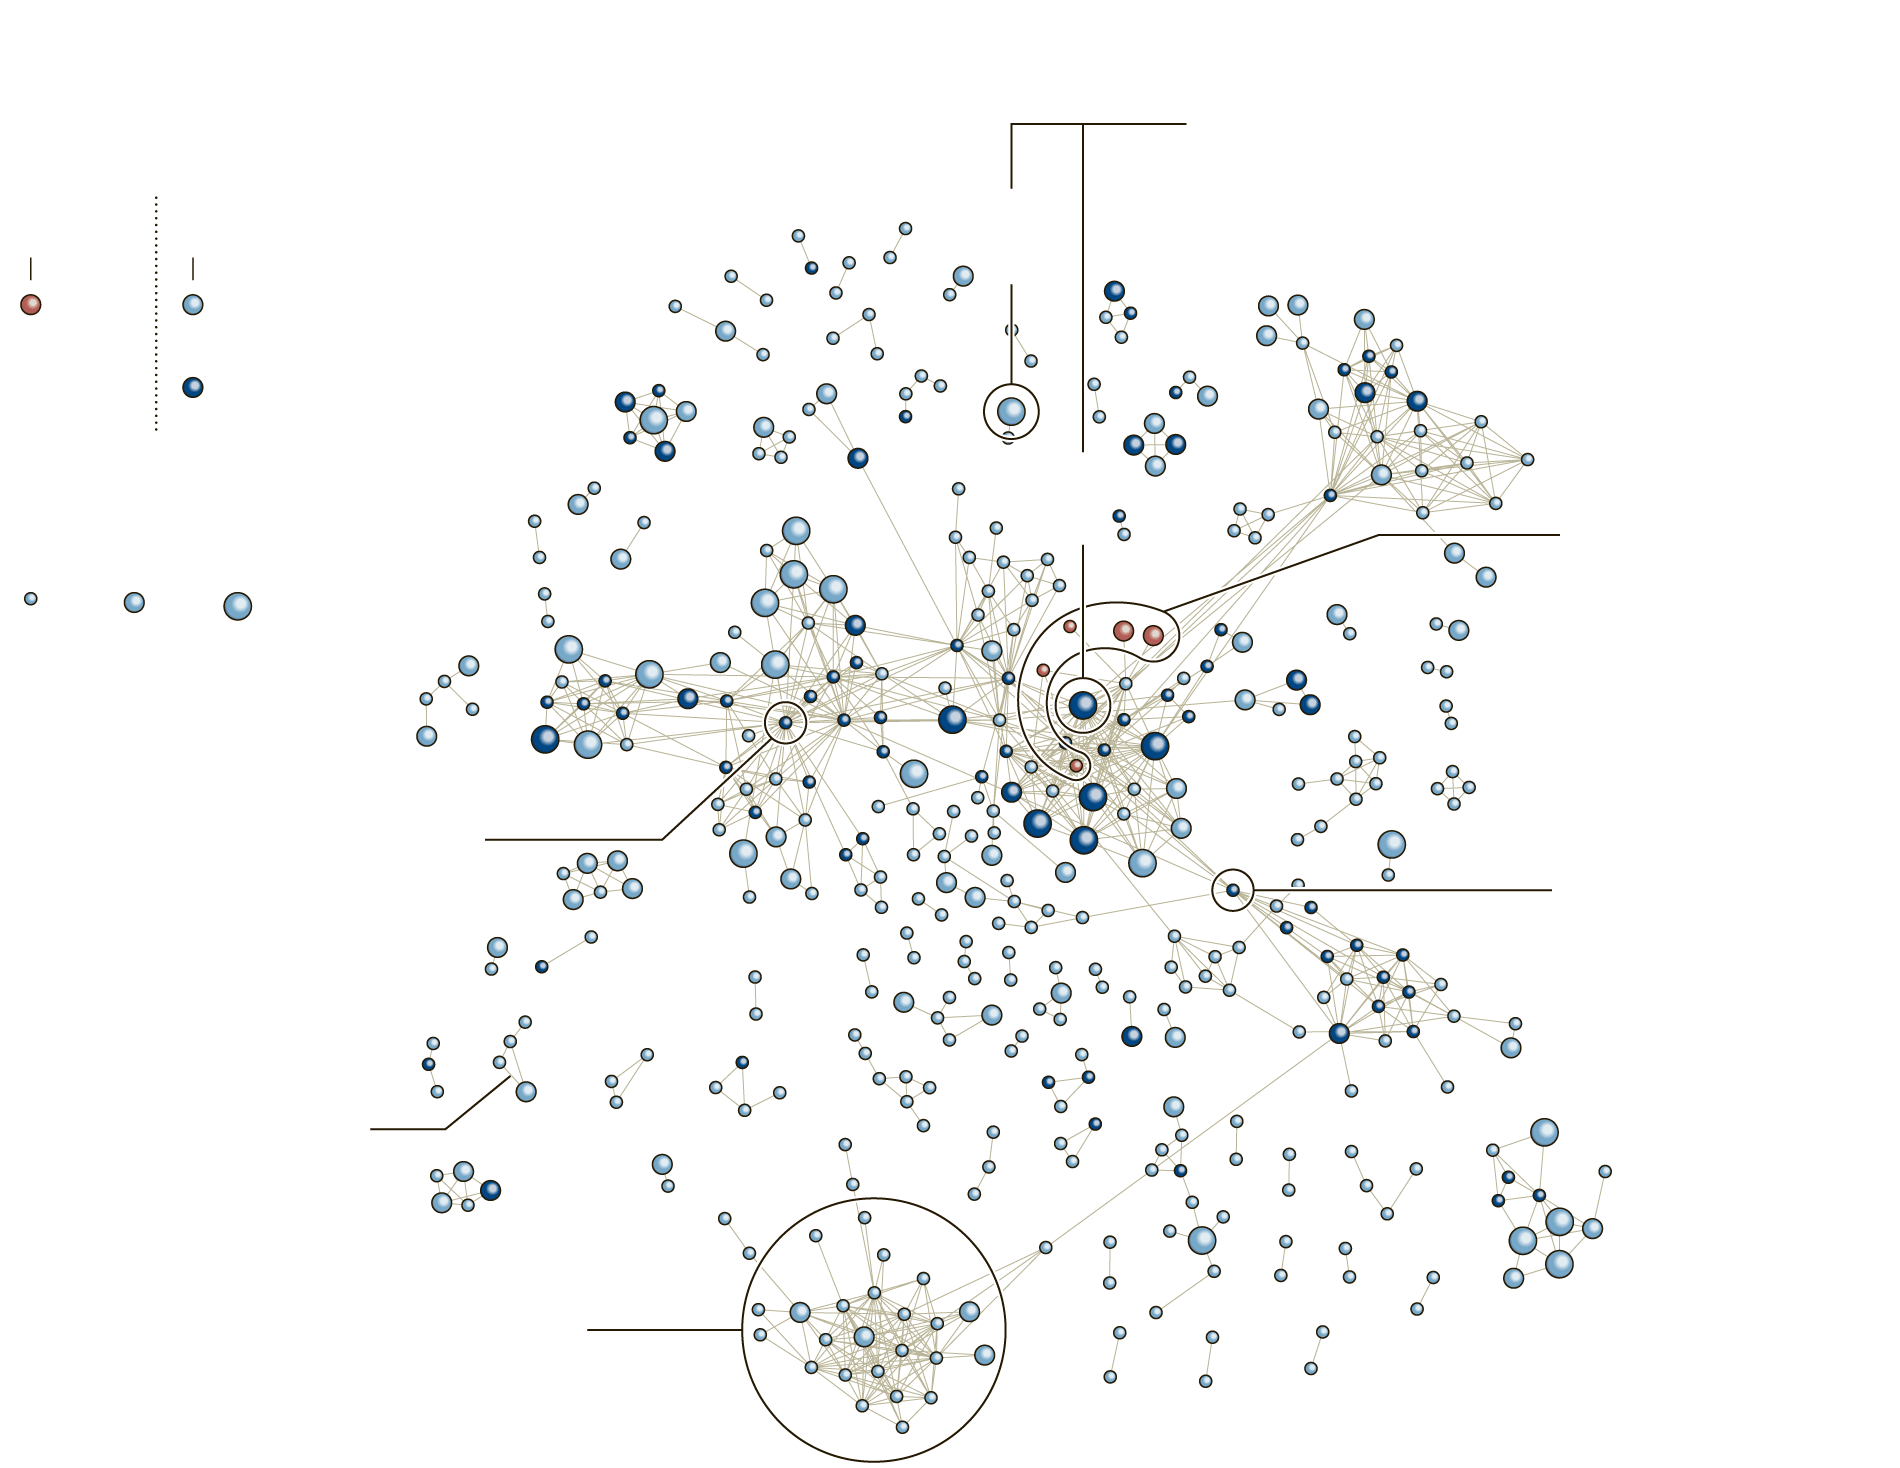 Drug Marketers Use Social Network Diagrams to Help Locate